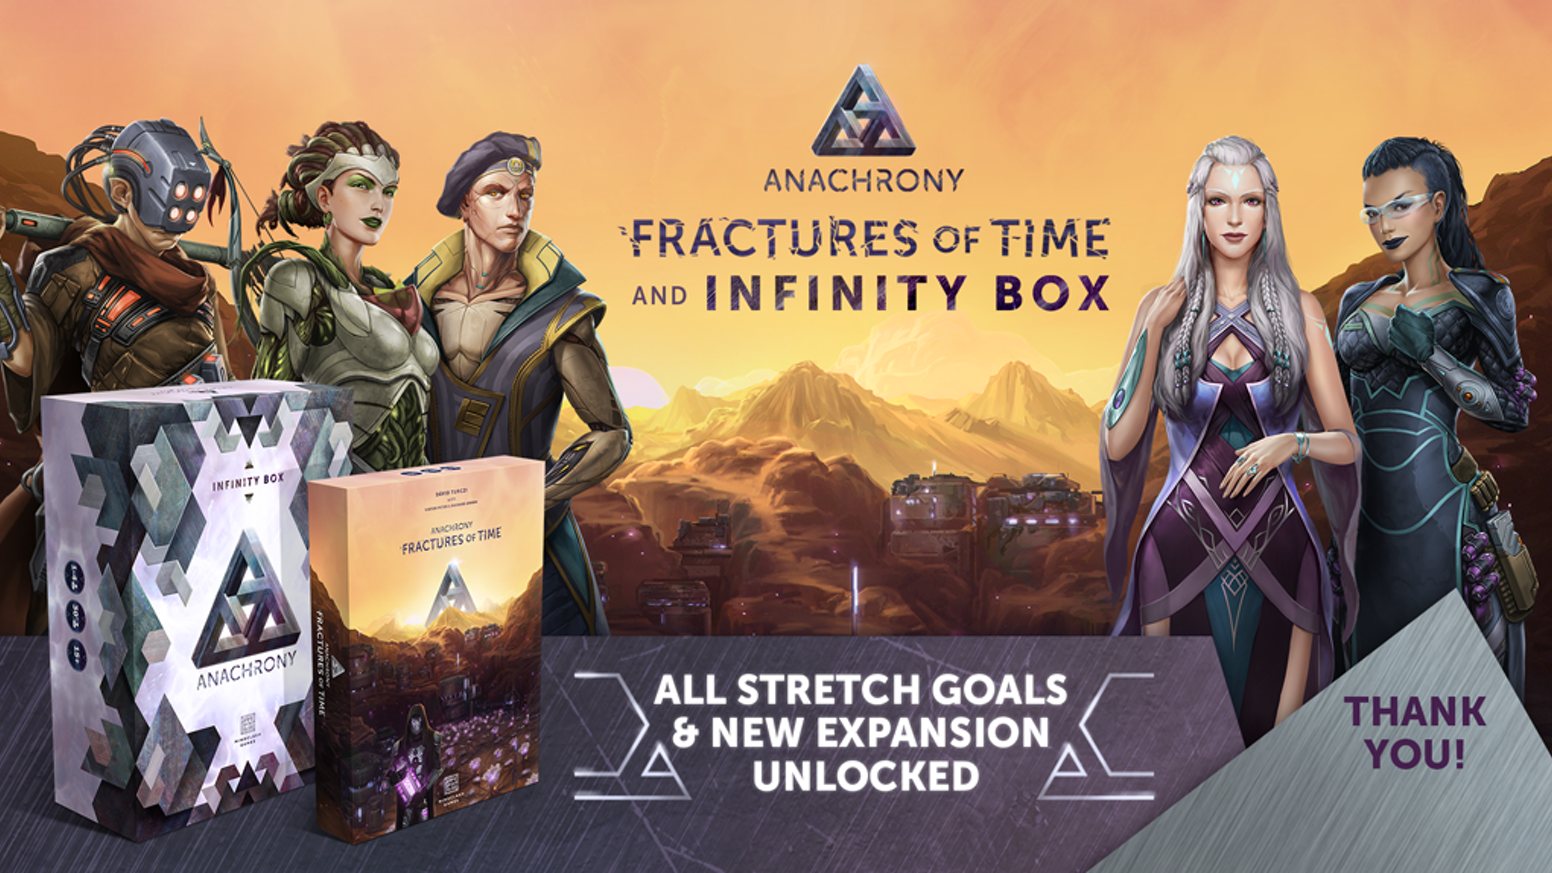 Return to the world of Anachrony and change the fate of New Earth in a new expansion and the exclusive Infinity Box!